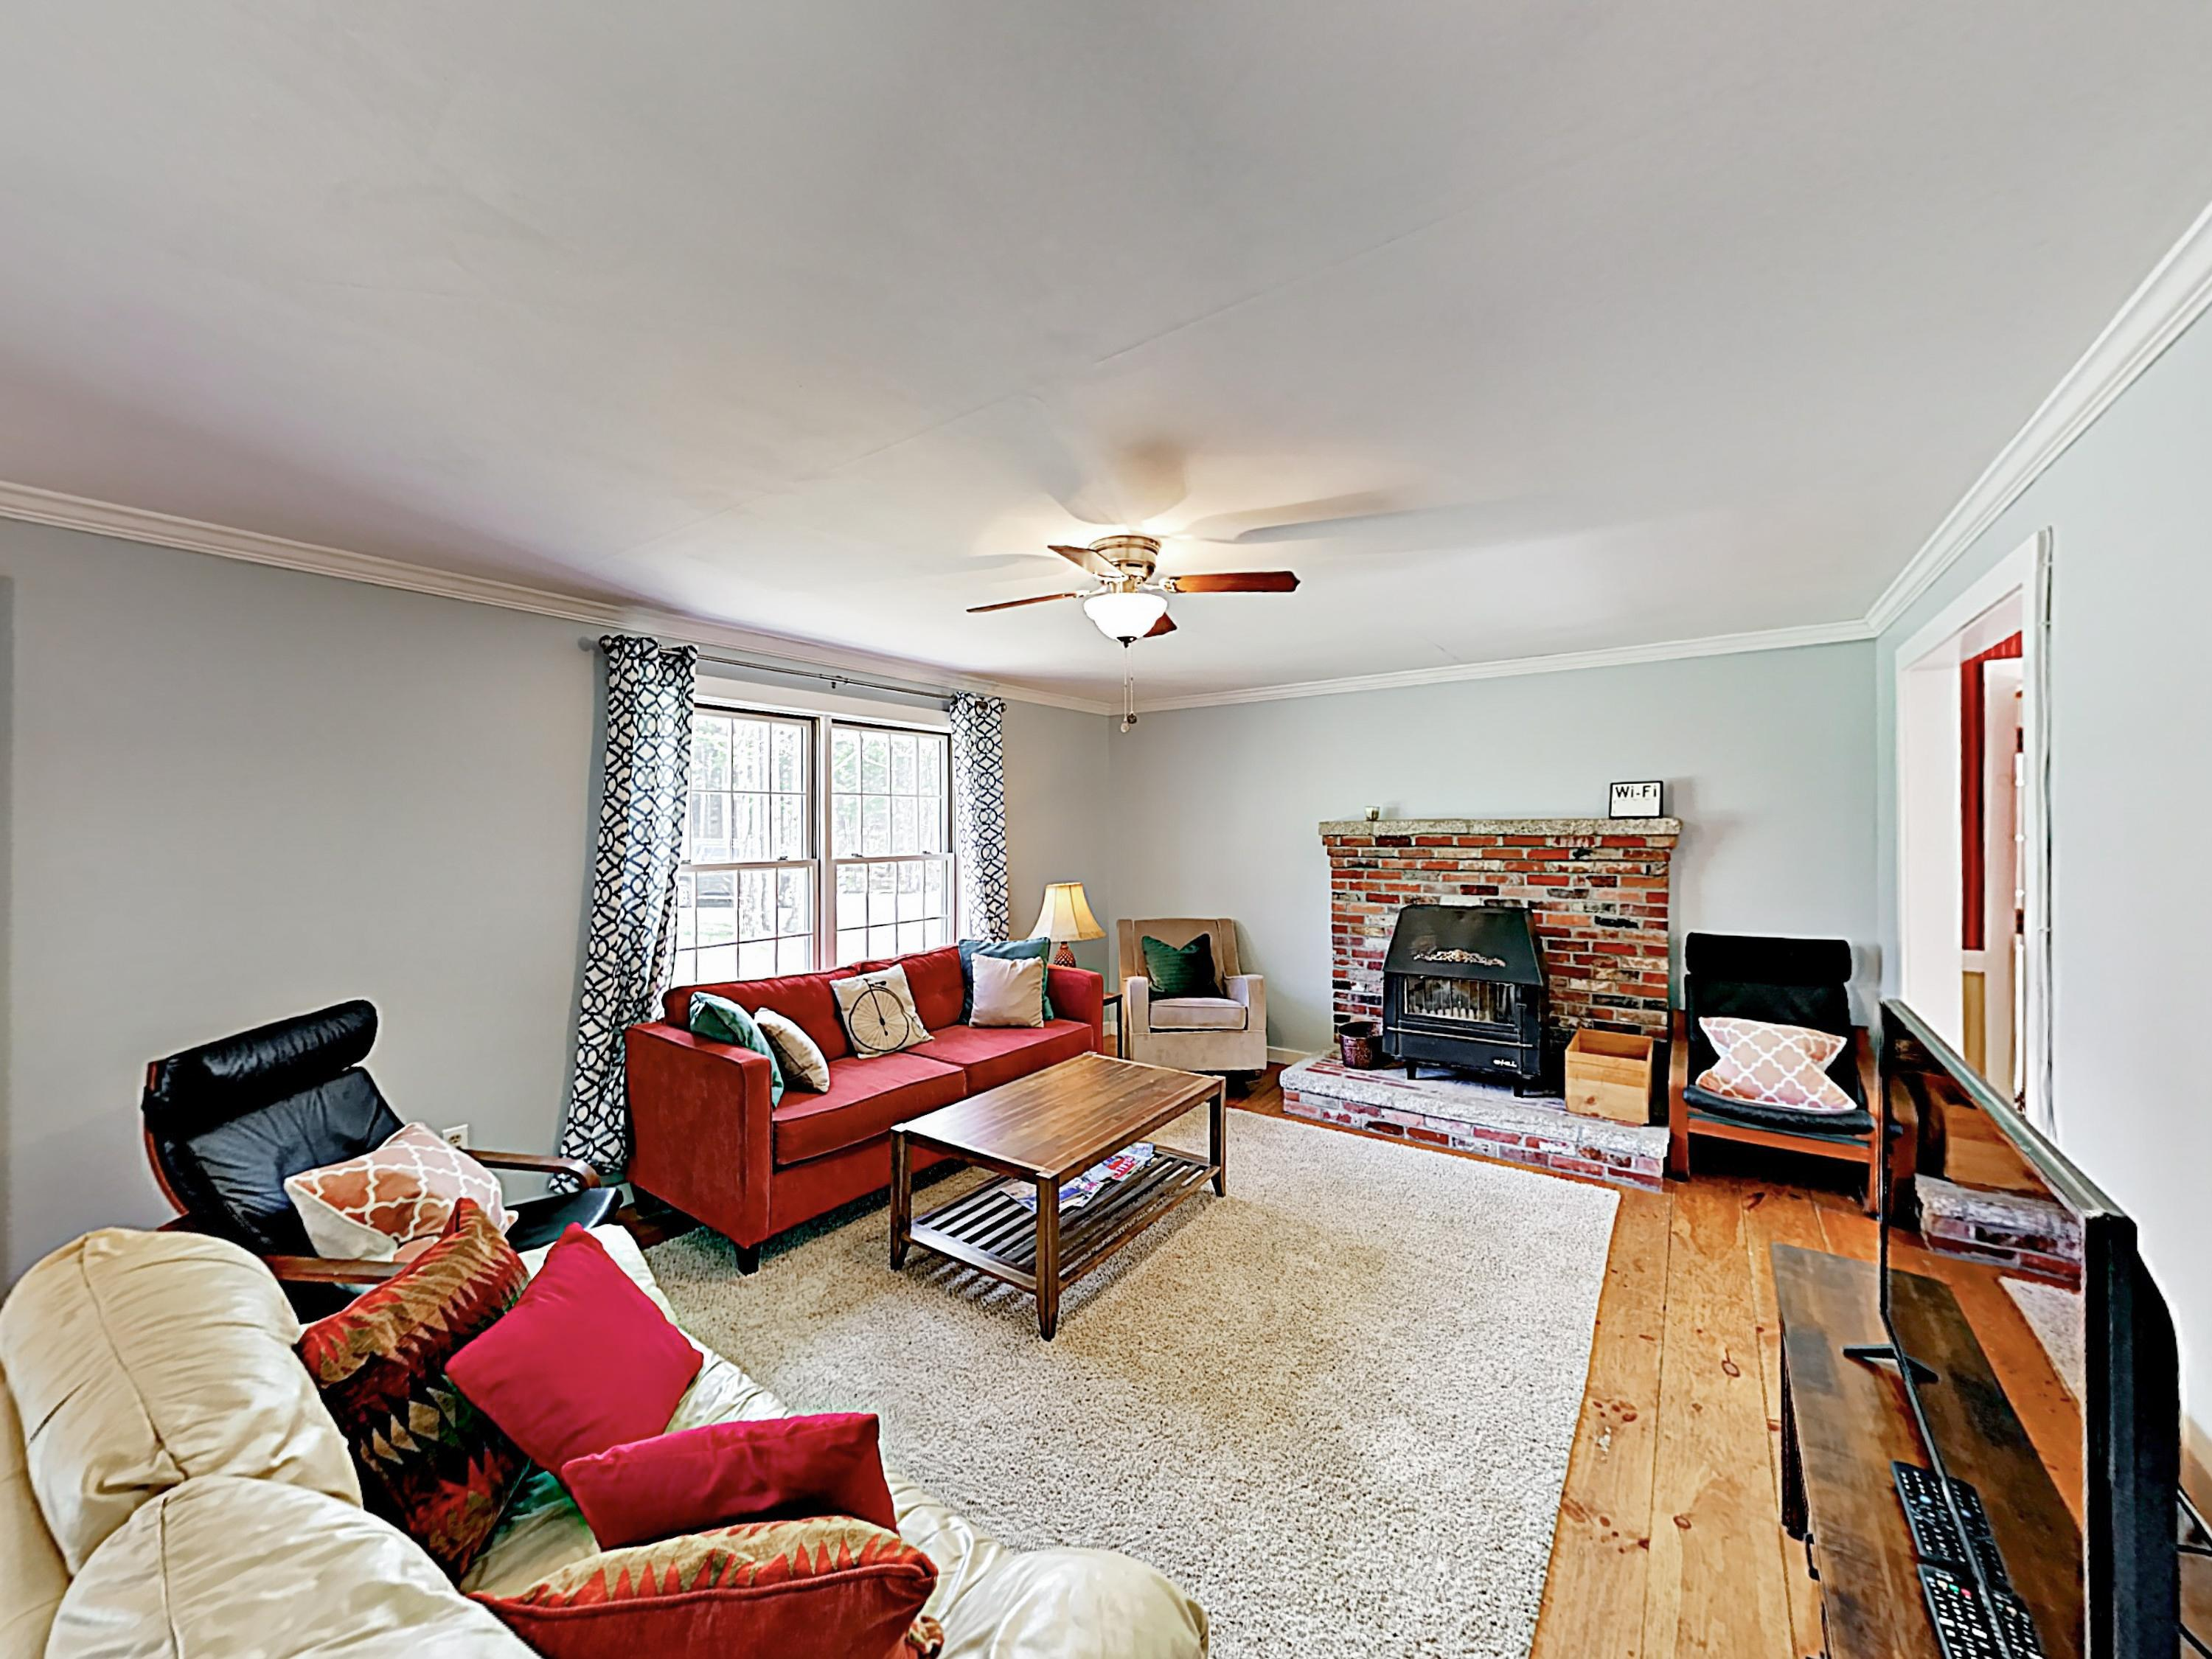 Cozy up in the living area furnished with a couch, chairs, and a flat-screen TV.